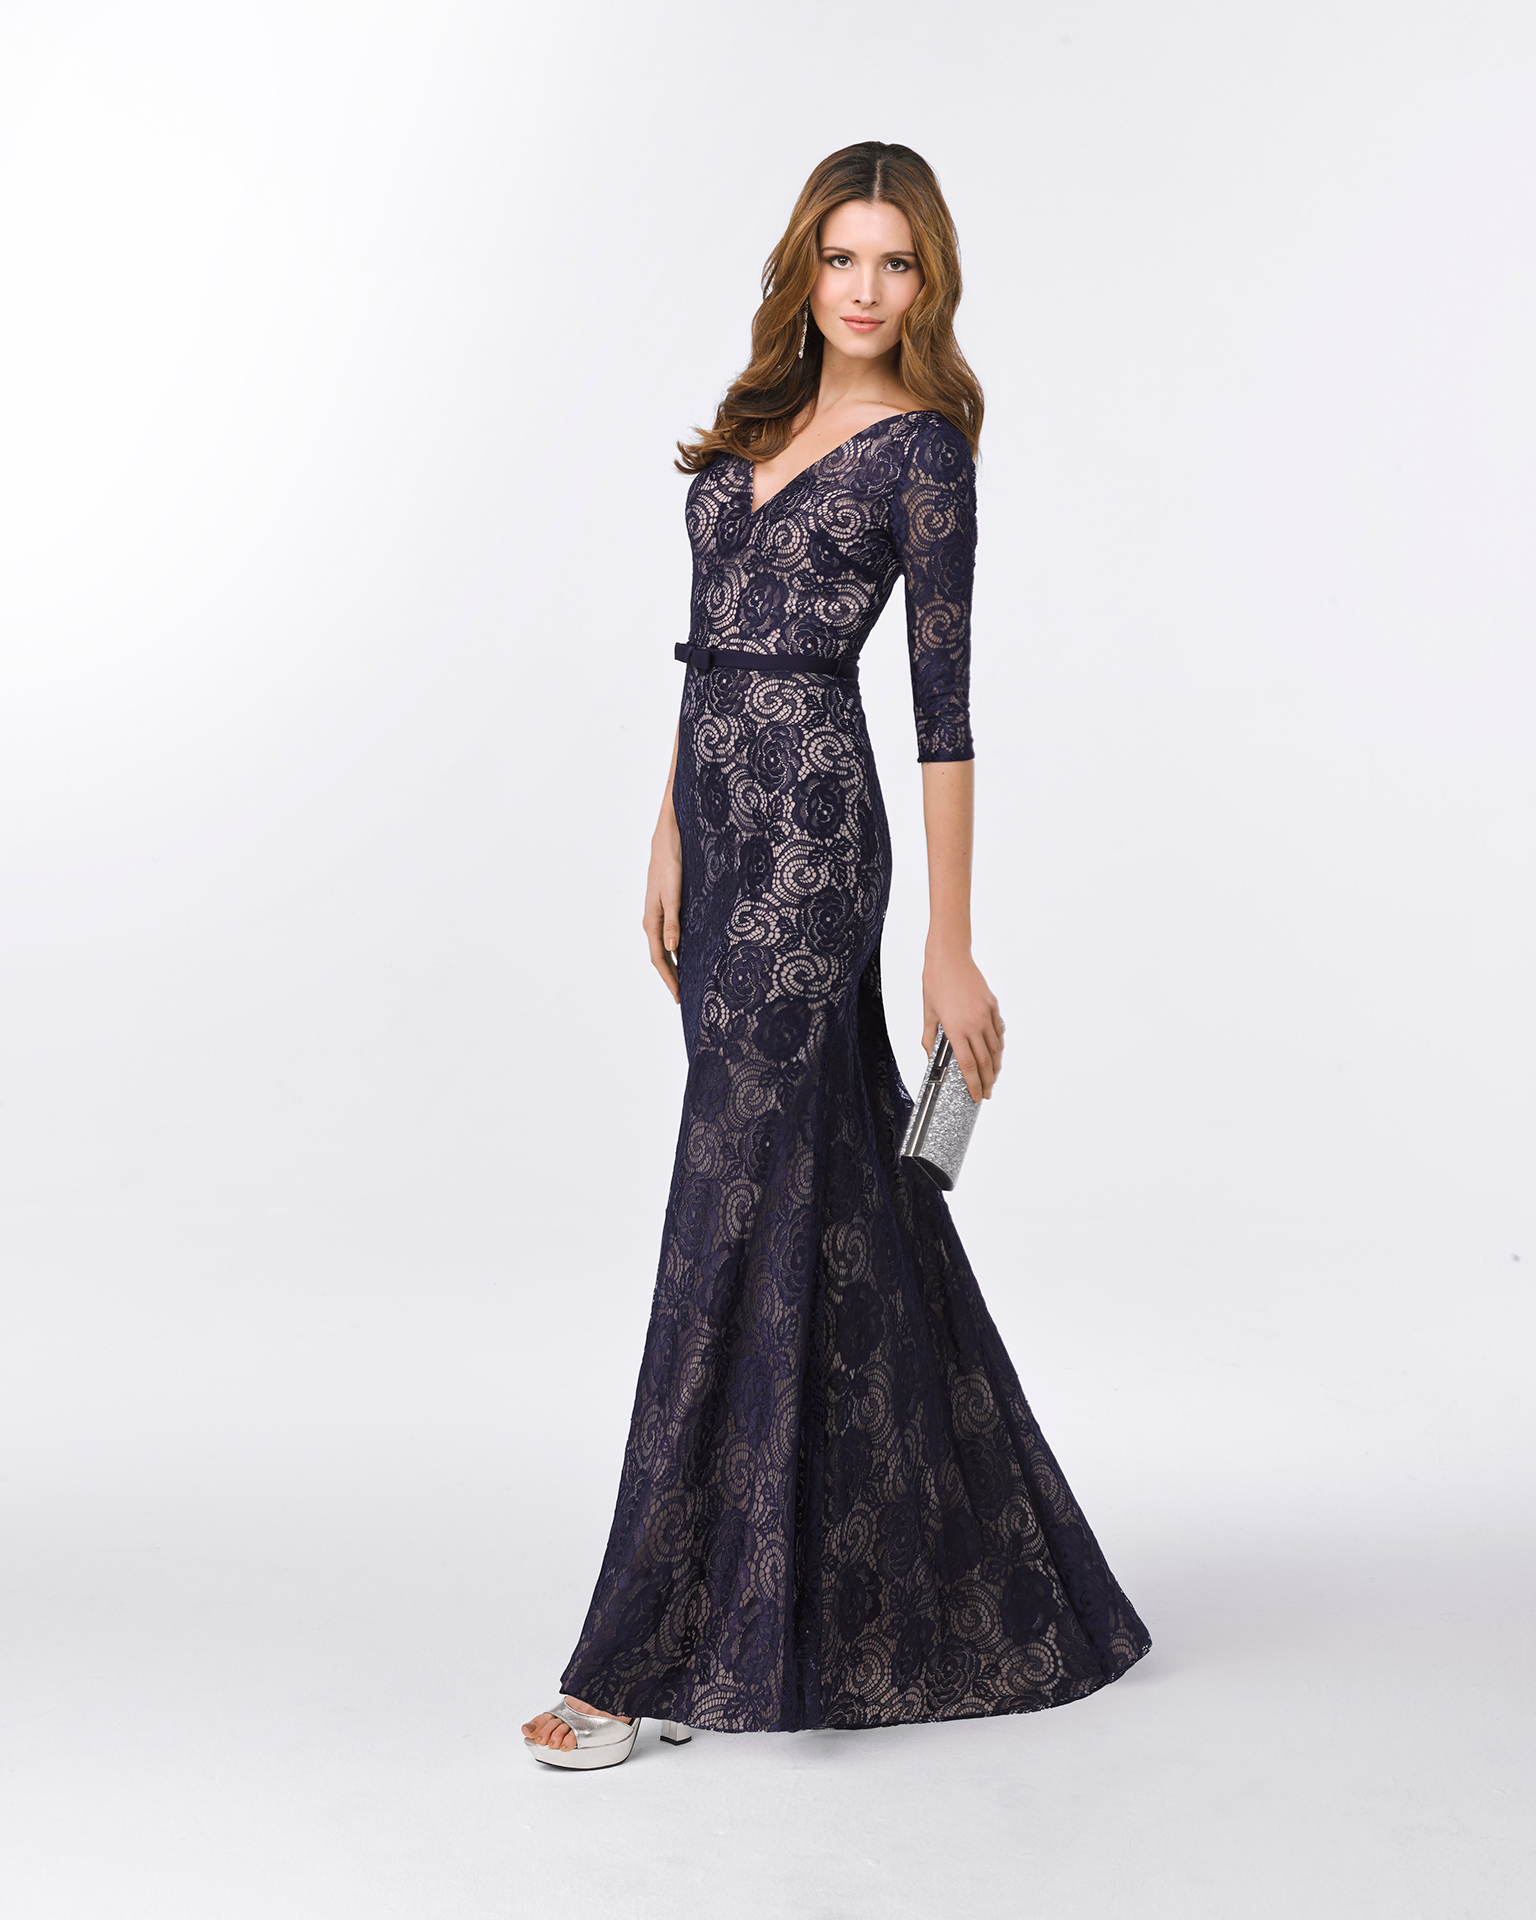 Long lace cocktail dress with V-neckline, three-quarter sleeves and detail on waist. Available in navy blue/nude and cobalt. 2018 FIESTA AIRE BARCELONA Collection.